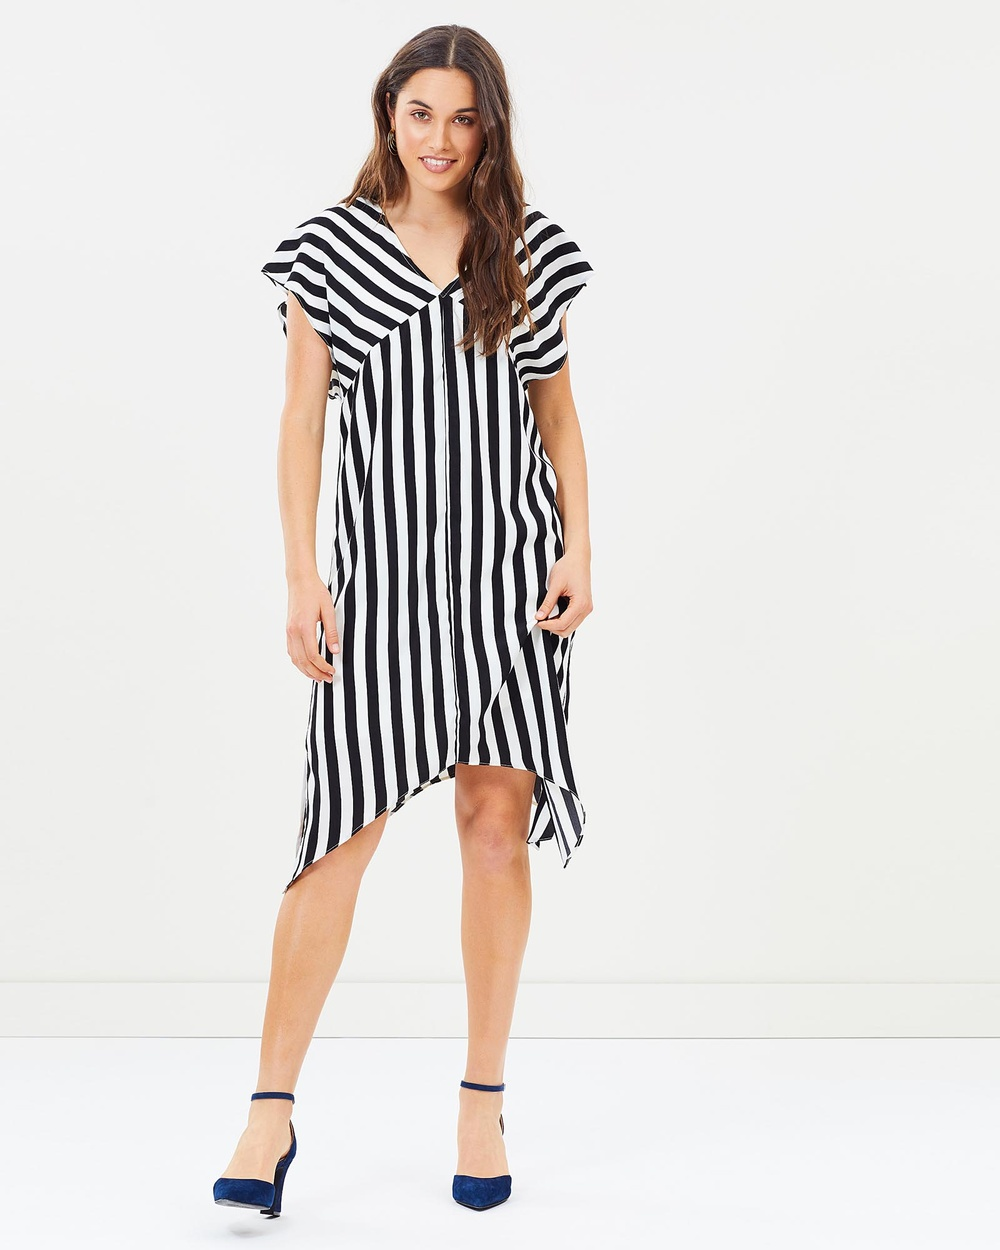 Honey and Beau Acacia Kaftan Dress Dresses Black-White Acacia Kaftan Dress